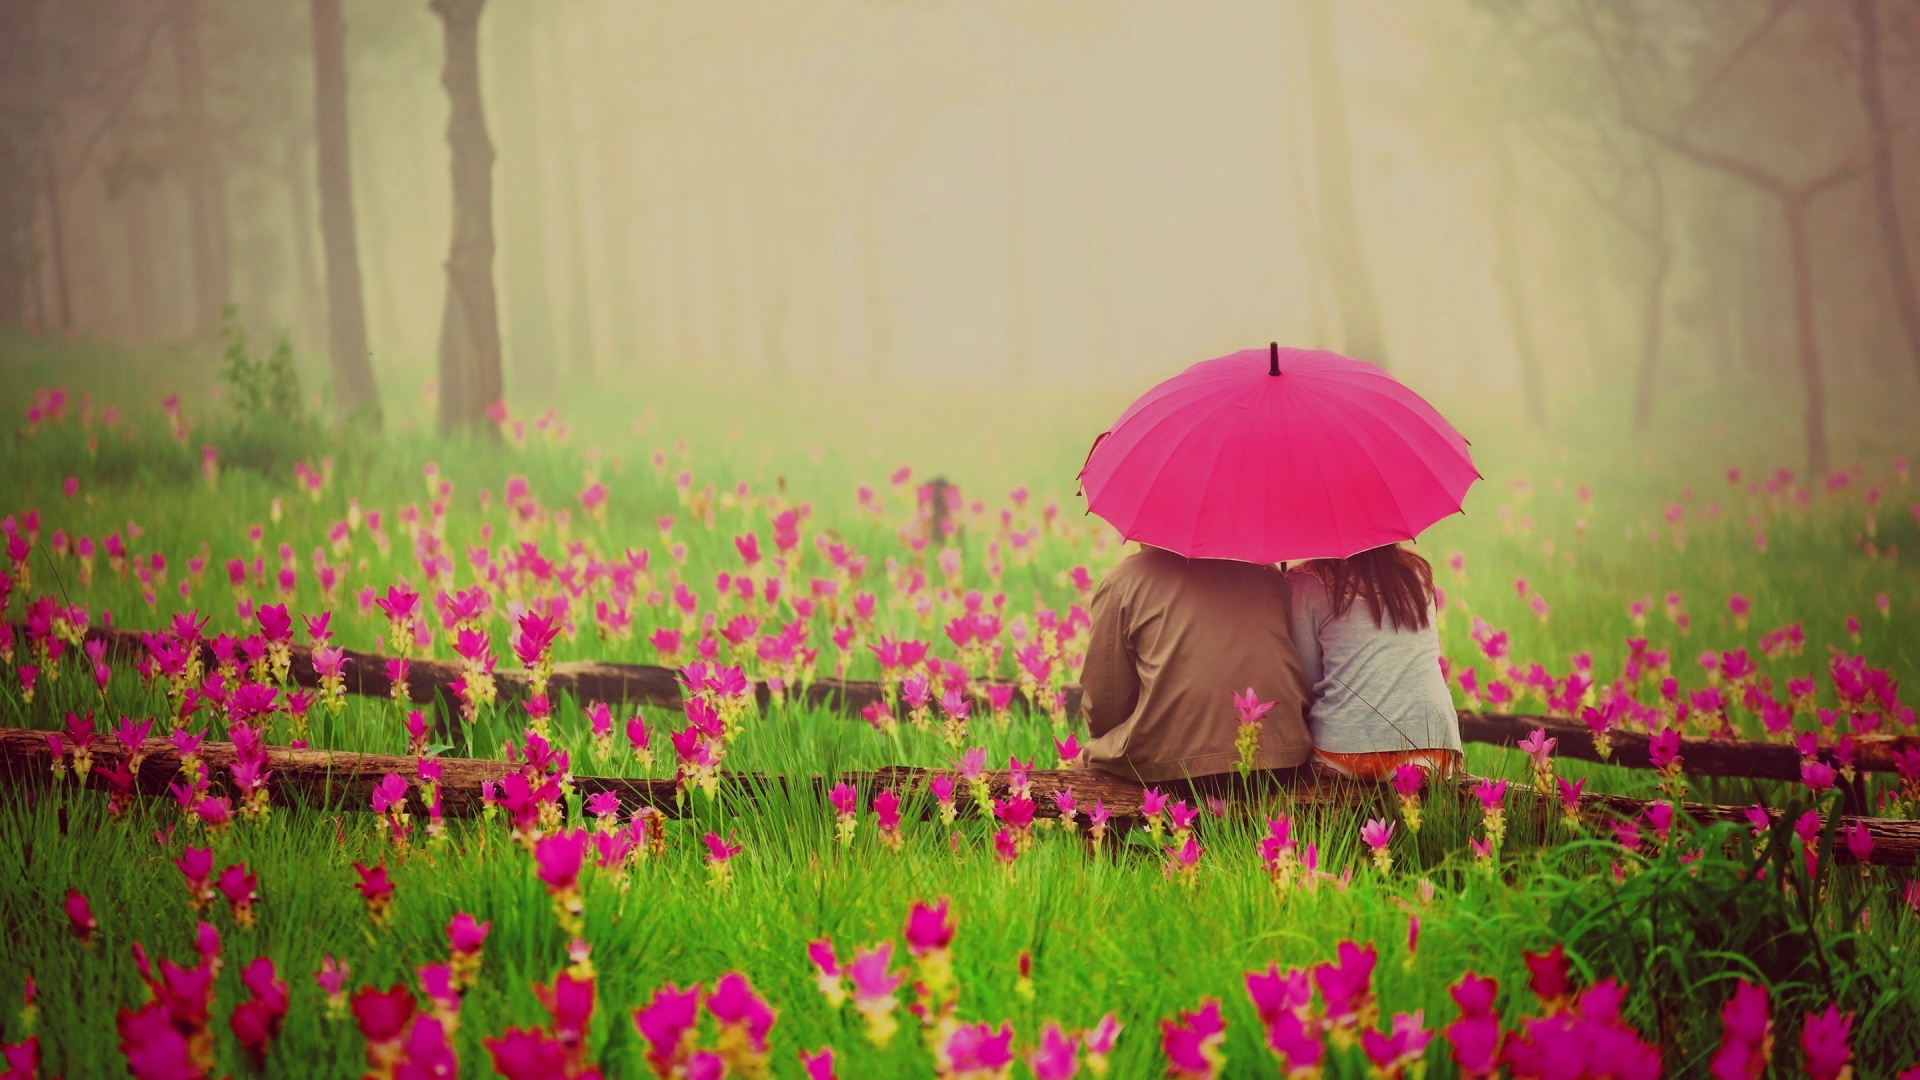 Romantic Love Flowers Pictures 20 cool Hd Wallpaper - Hdlovewall.com